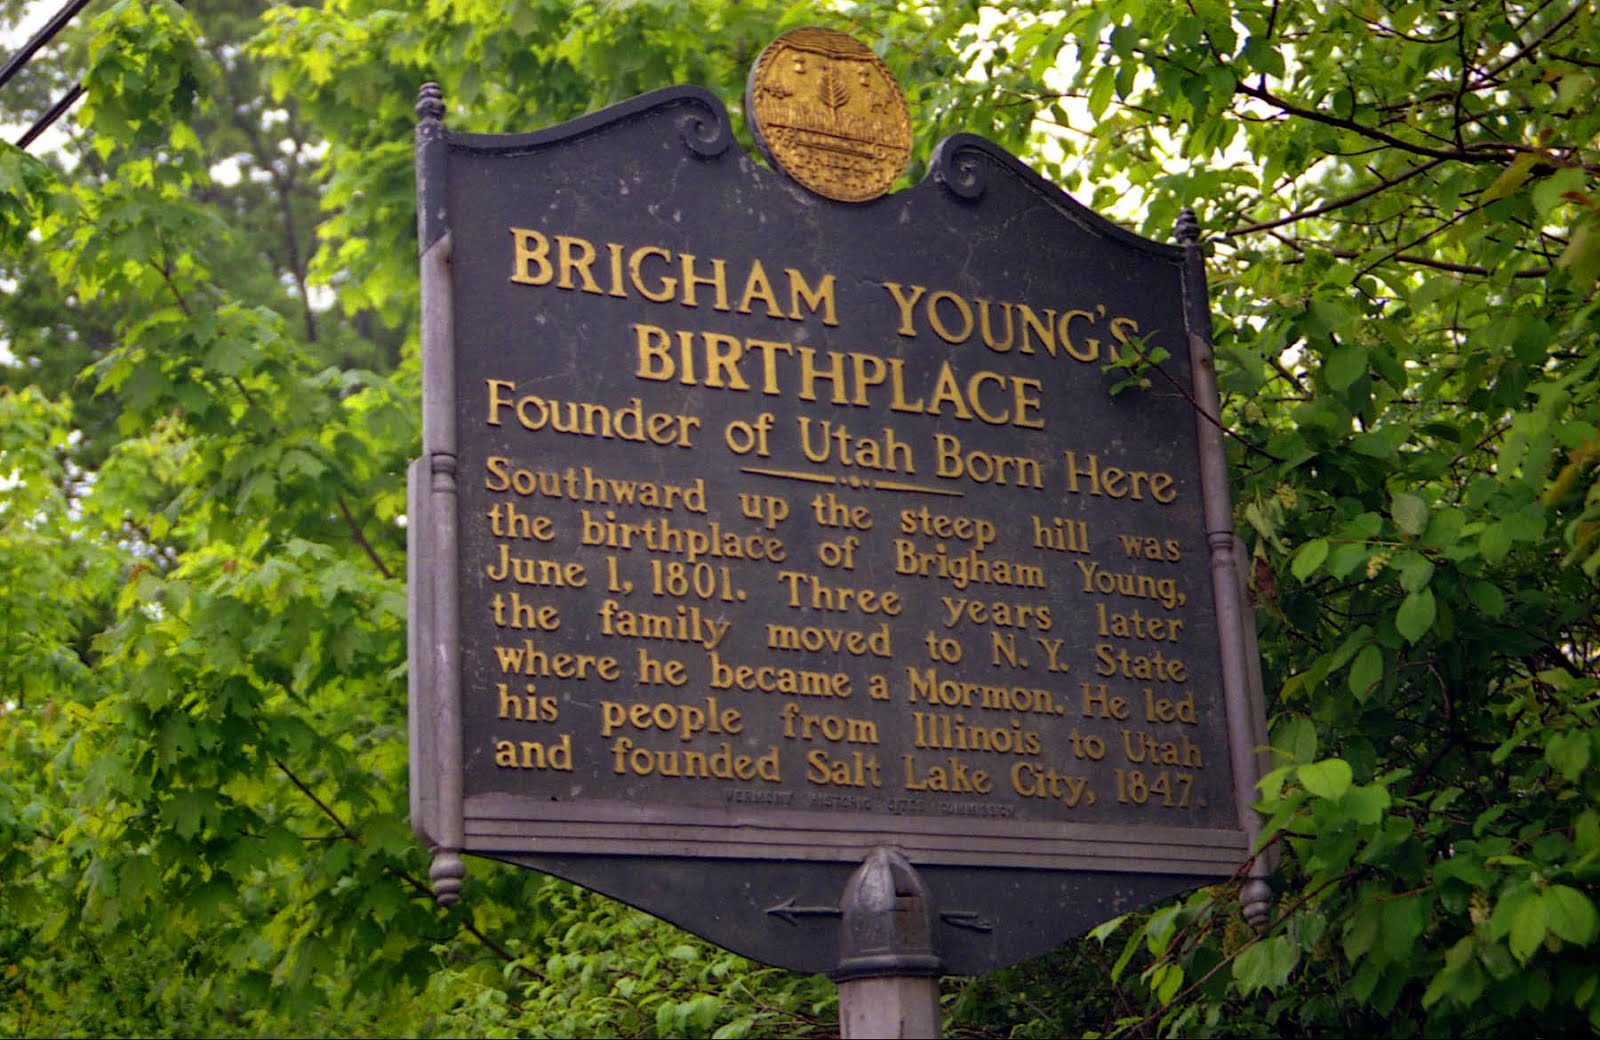 A picture of a plaque commemorating the birthplace of Brigham Young in Whitingham Vermont.